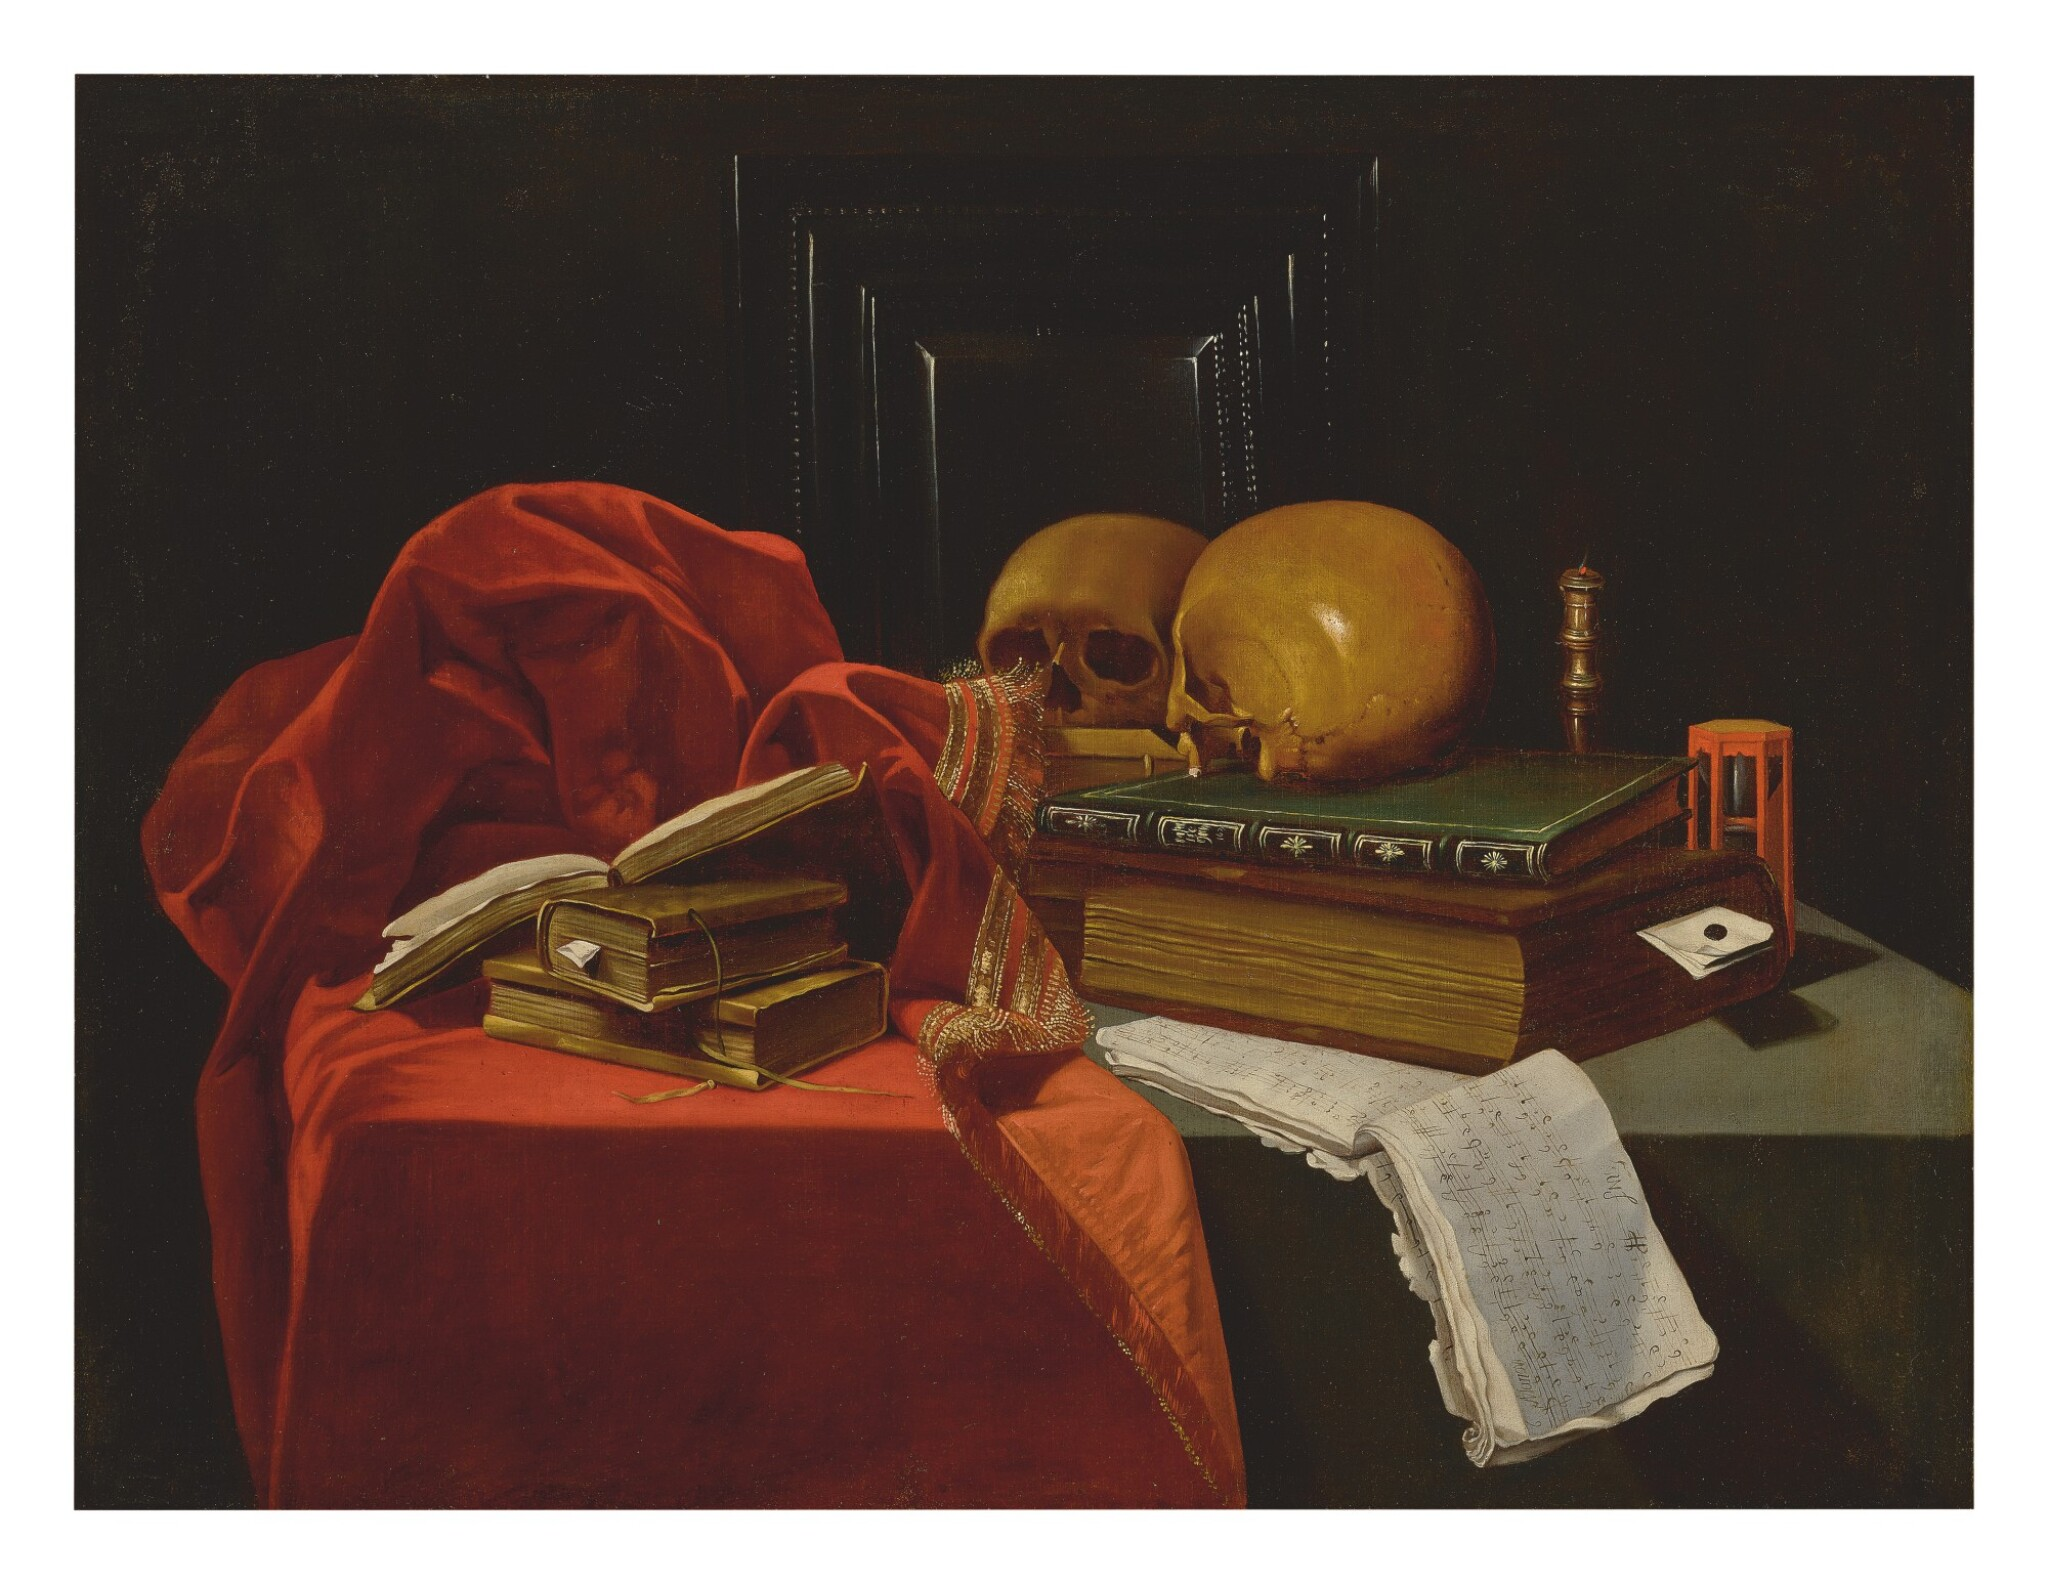 CIRCLE OF MADELEINE BOULLOGNE | VANITAS STILL LIFE WITH BOOKS, SKULLS, MUSIC, AN HOURGLASS, A FRAME, AND OTHER OBJECTS, ALL ON A TABLE